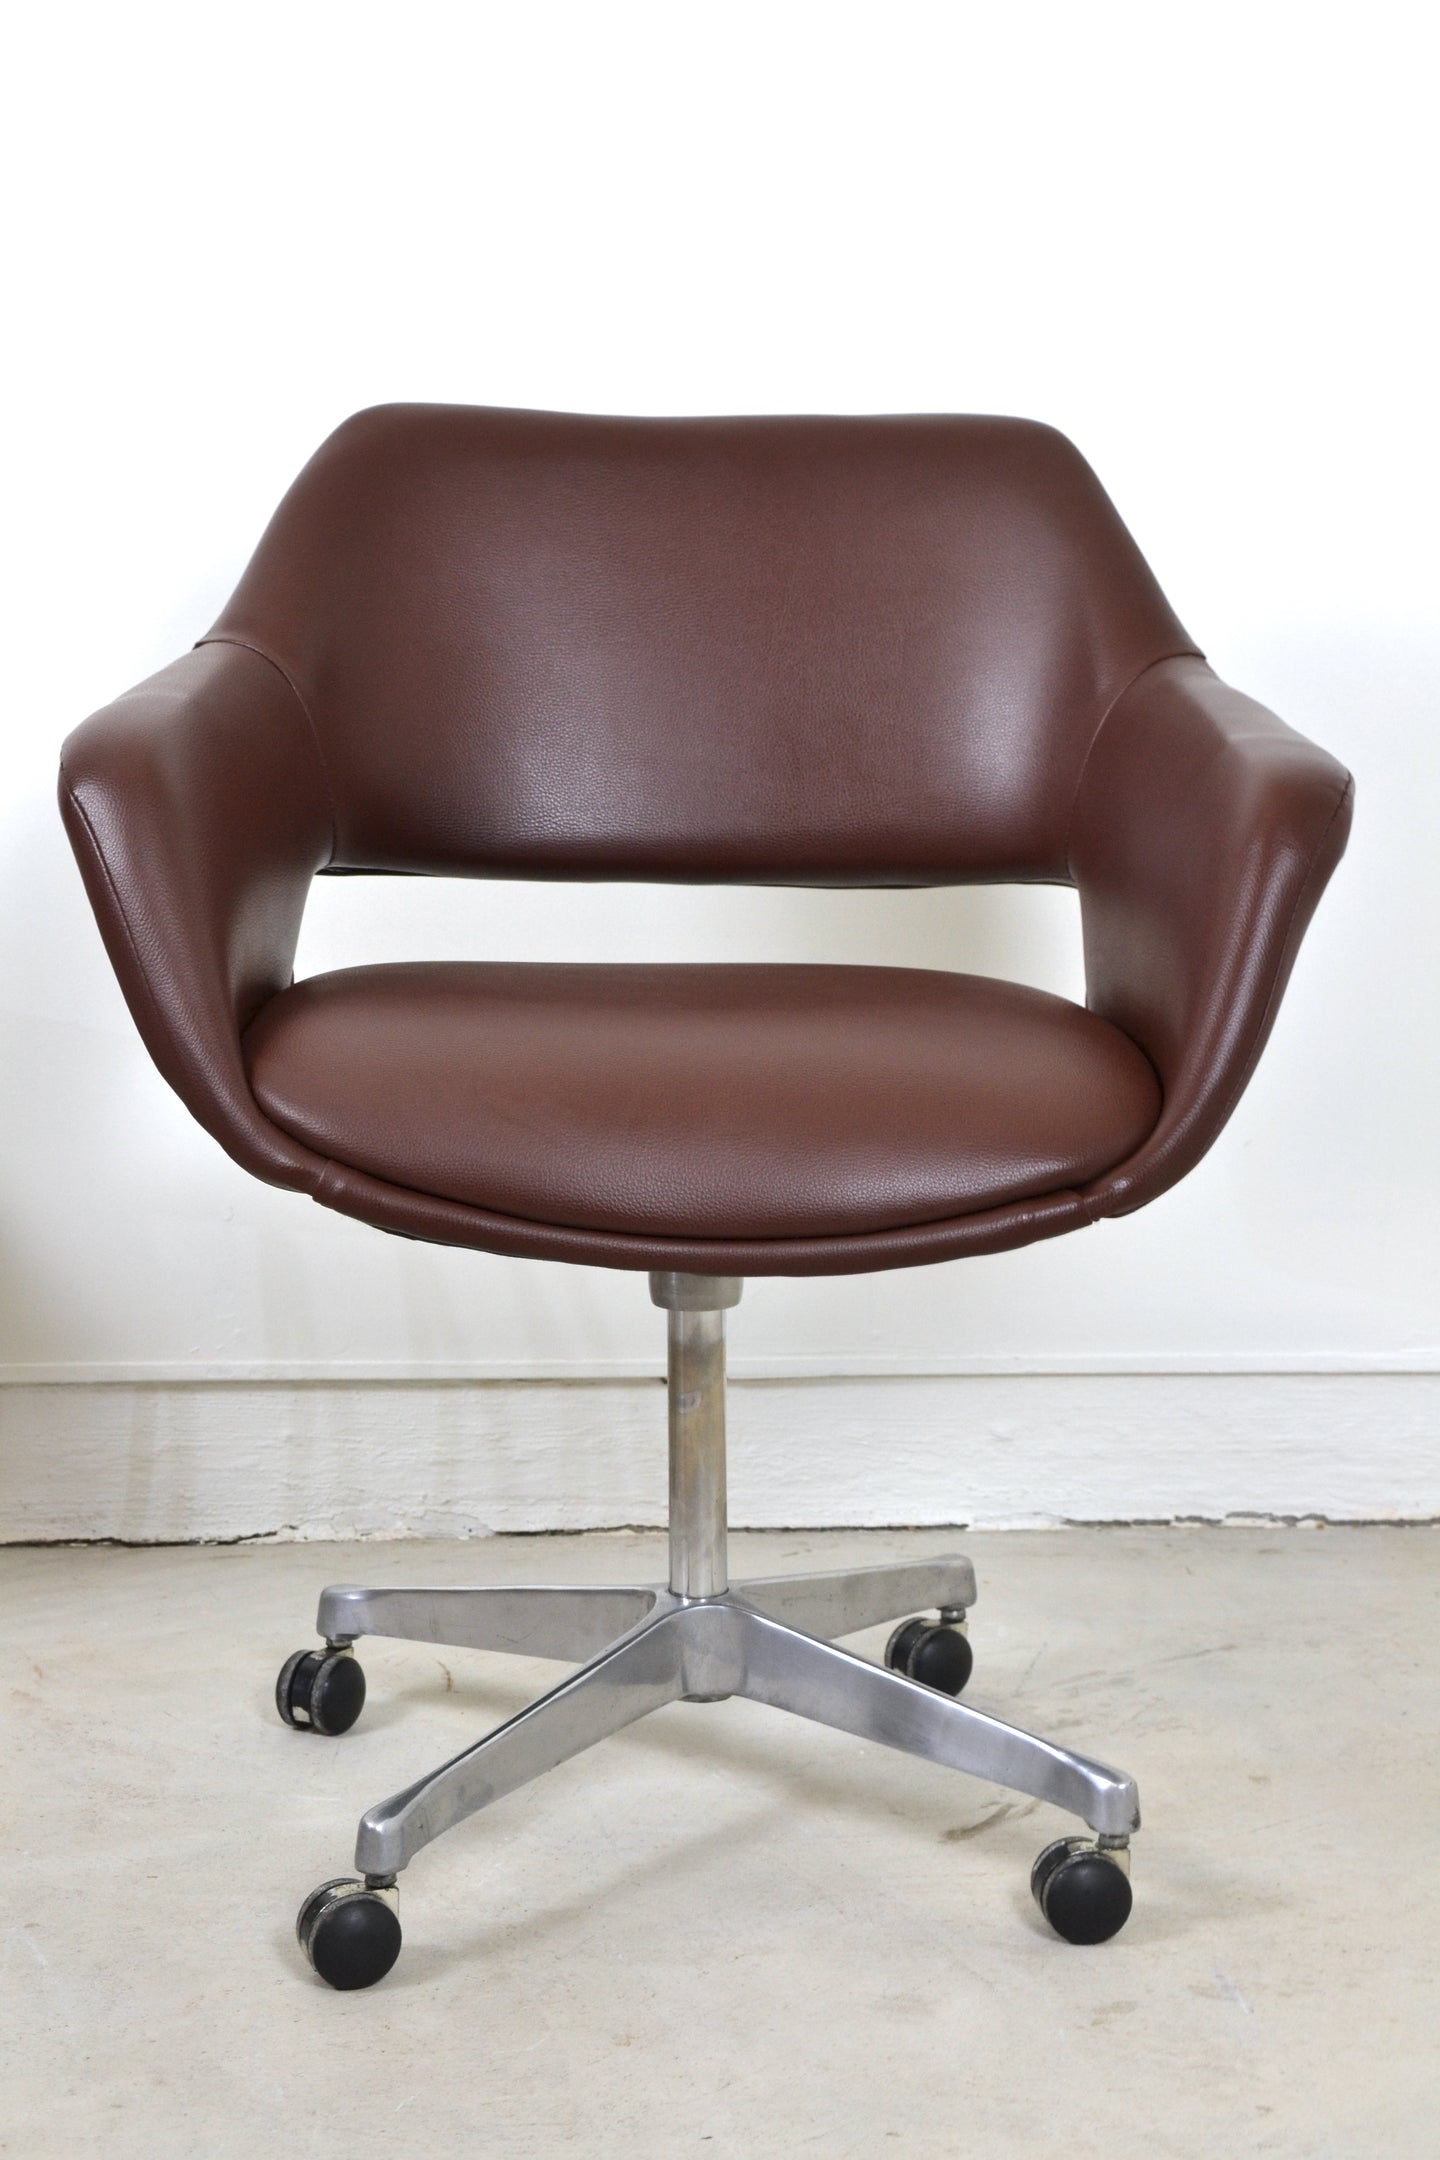 Framac winged ply-formed office chair. Australia, c,1960s Edwin Fox Furniture Melbourne furniture sales and restoration service,